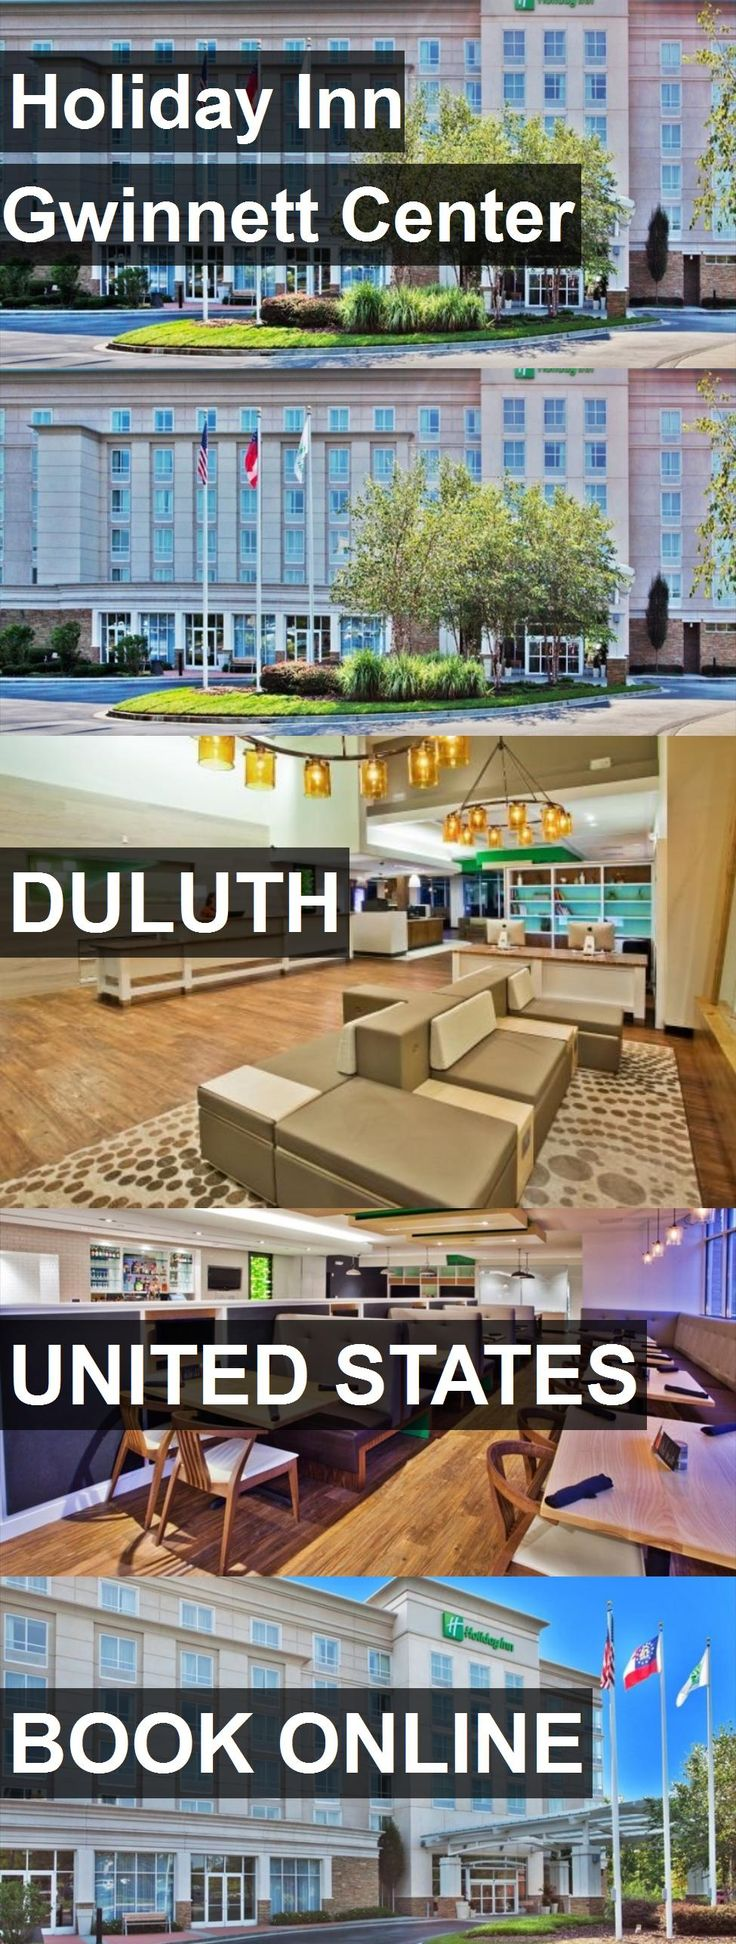 Hotel Holiday Inn Gwinnett Center in Duluth, United States. For more information, photos, reviews and best prices please follow the link. #UnitedStates #Duluth #travel #vacation #hotel